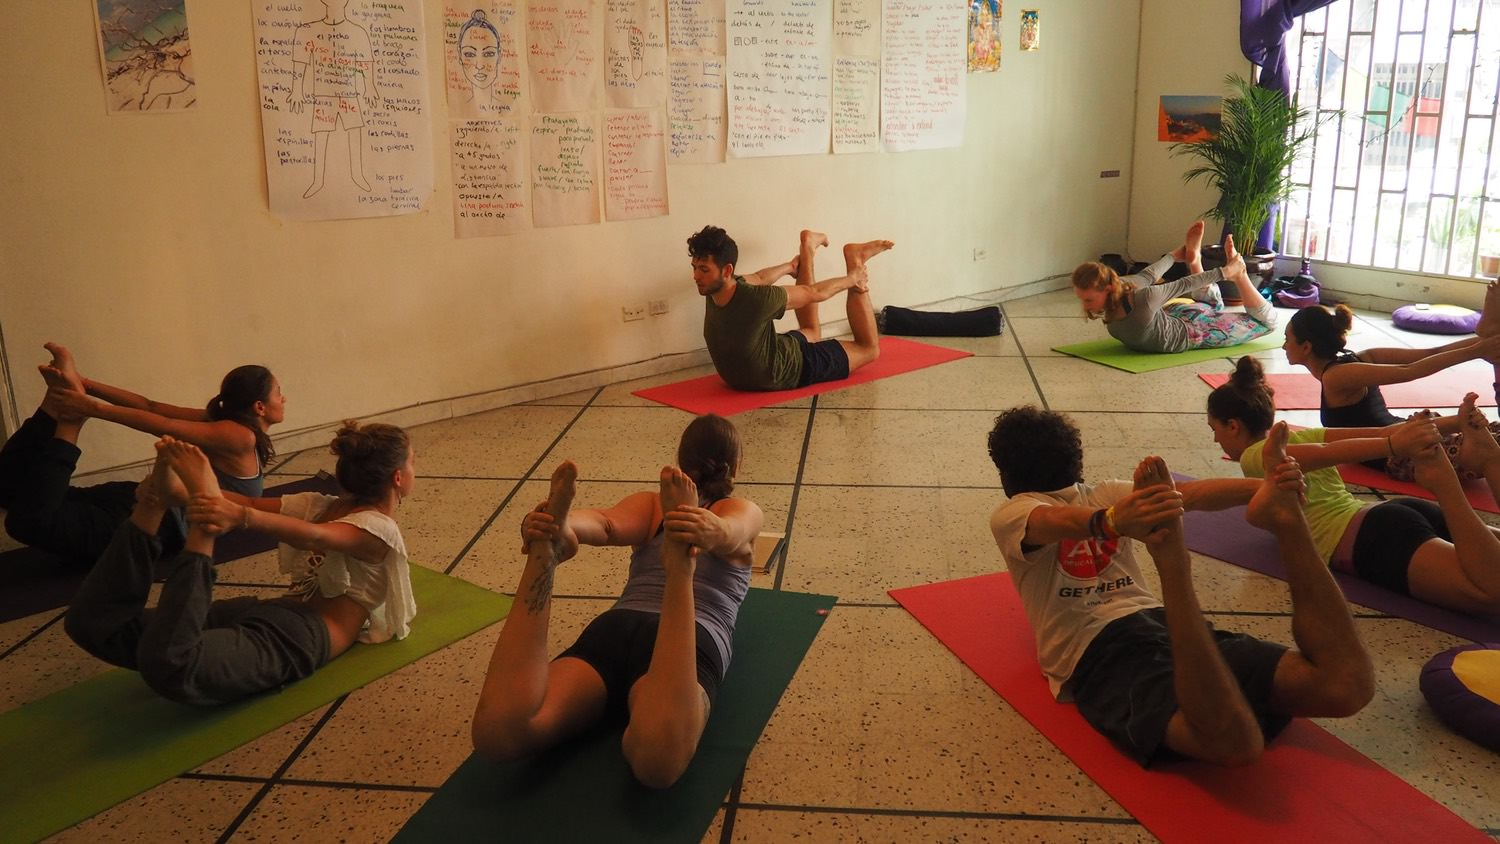 Yoga Internship Program, Medellín, Colombia, South America - teach and work in a yoga studio - continuing education 2